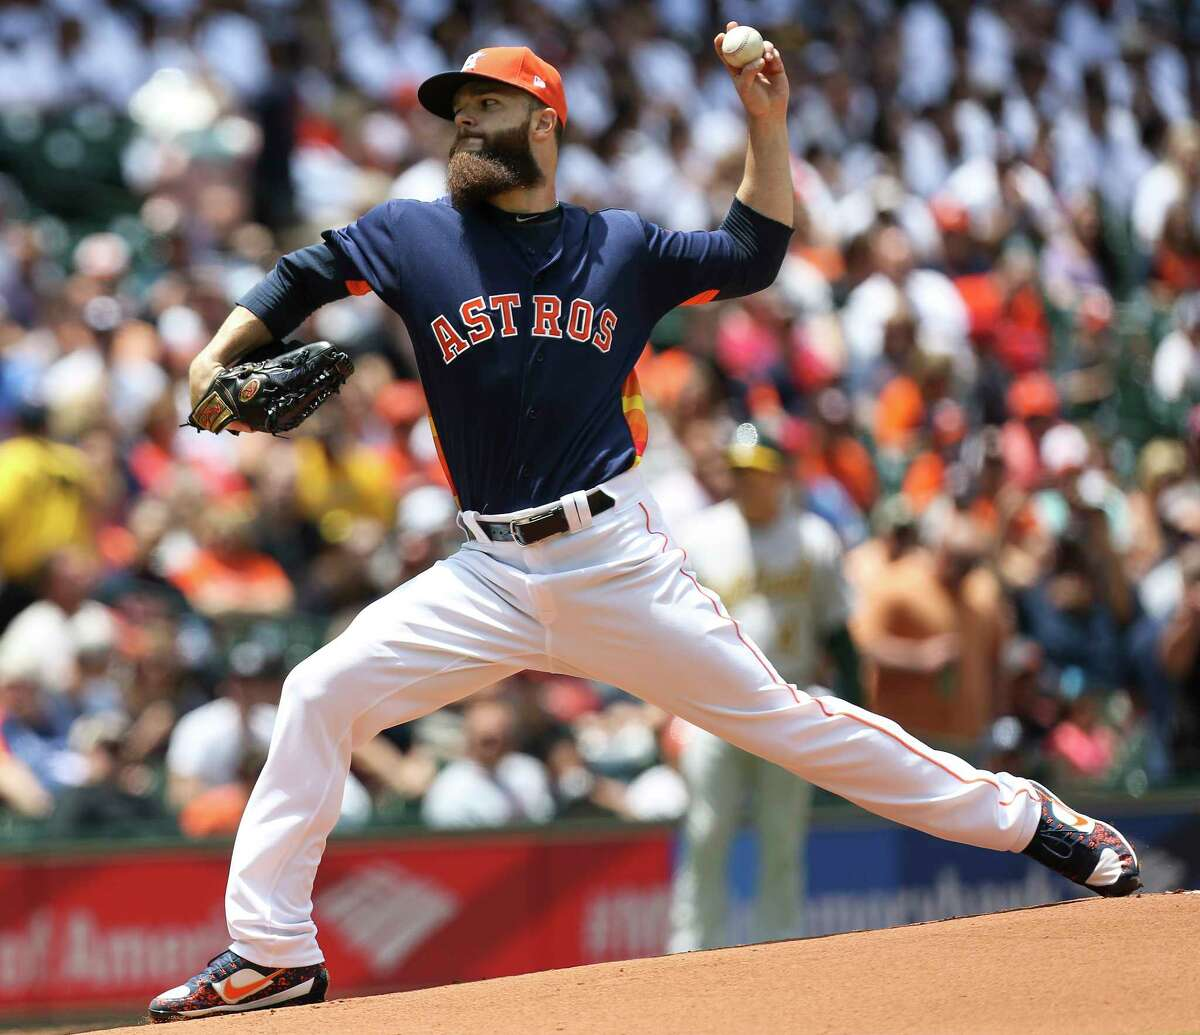 Astros starter Dallas Keuchel struck out nine A's in picking up his fifth victory of the season.